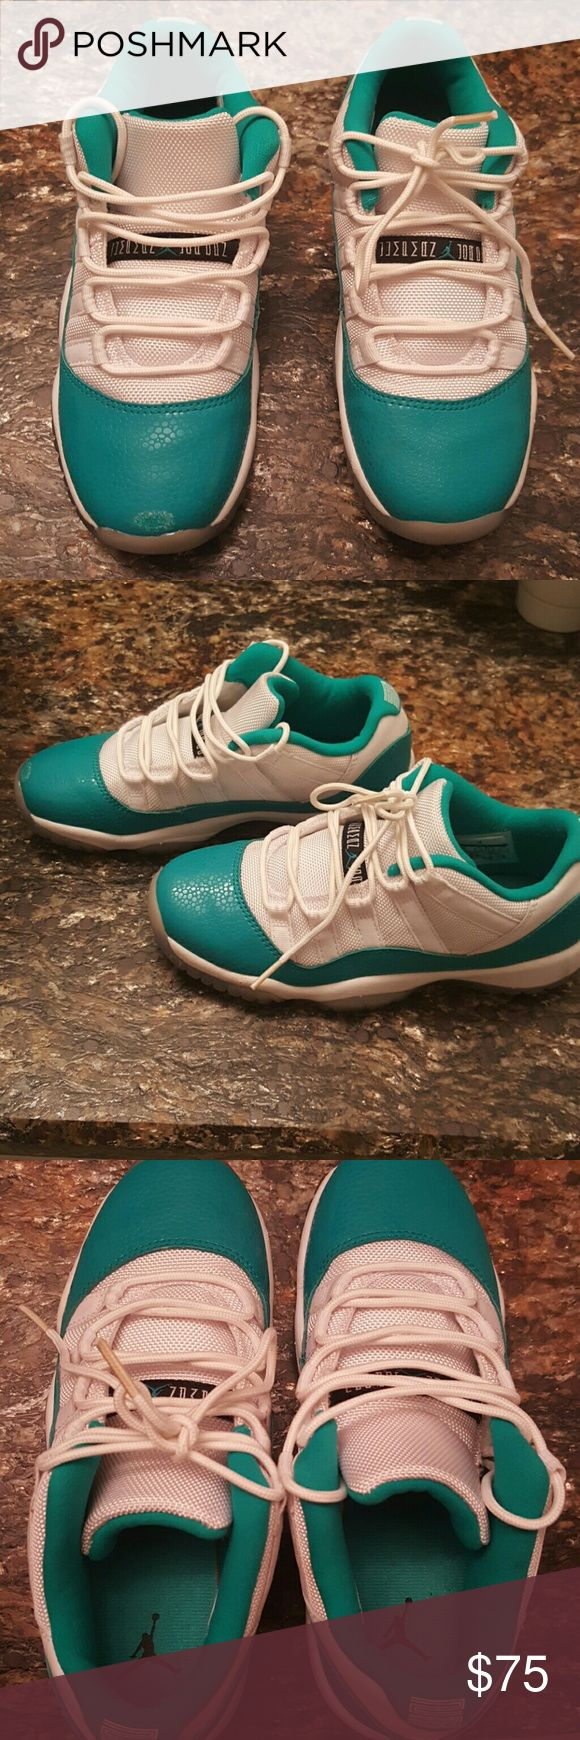 Youth Nike basketball shoes Authentic Nike Air Jordan 11 retro low sneaker. Rare sneaker. Excellent condition, please note small scuff to Right toe. White and teal in color. Nike Shoes Sneakers